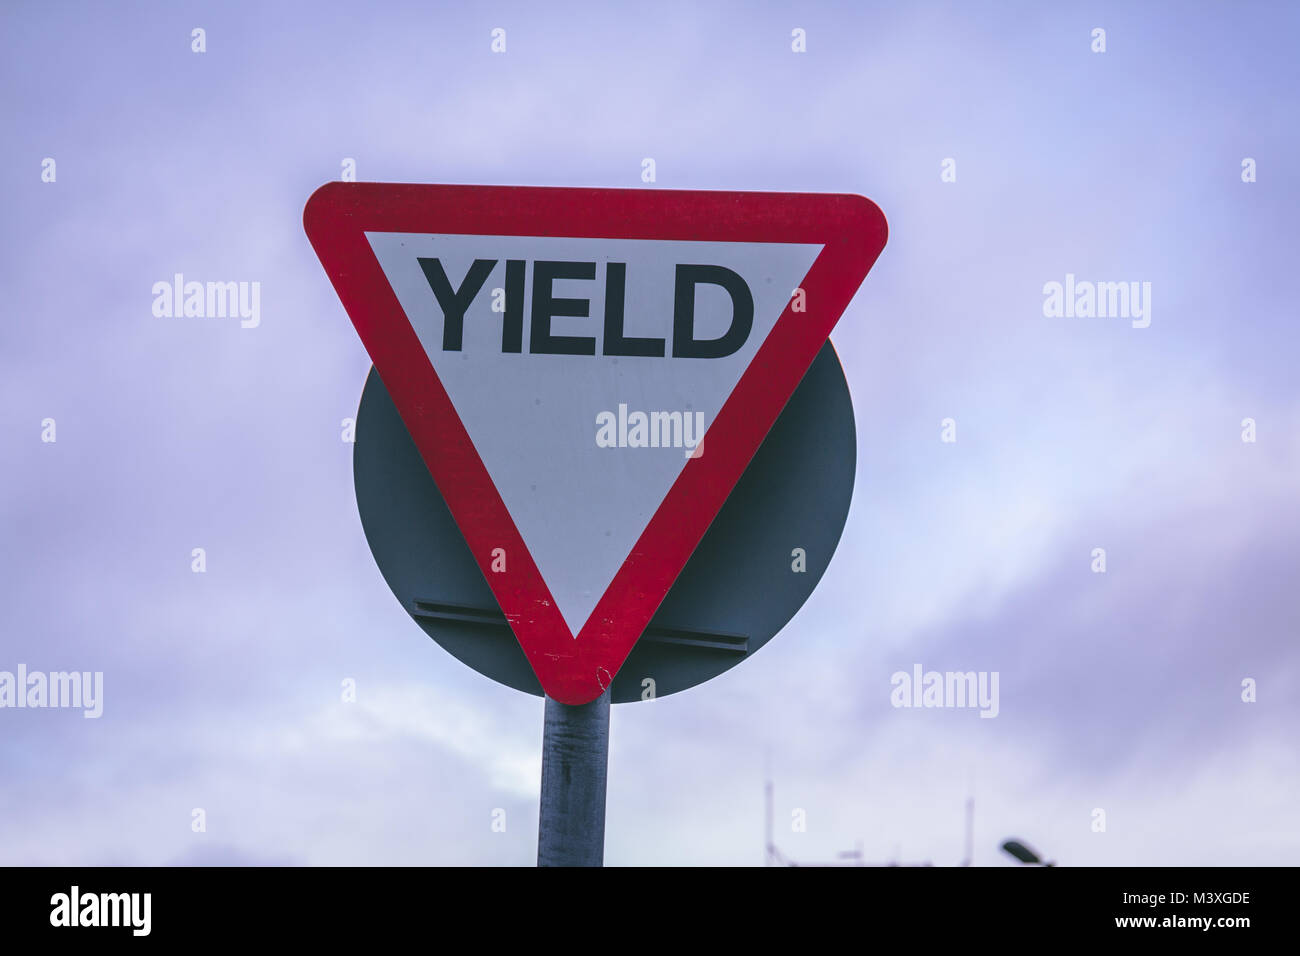 Close up of a yield road sign on a cloudy day - Stock Image